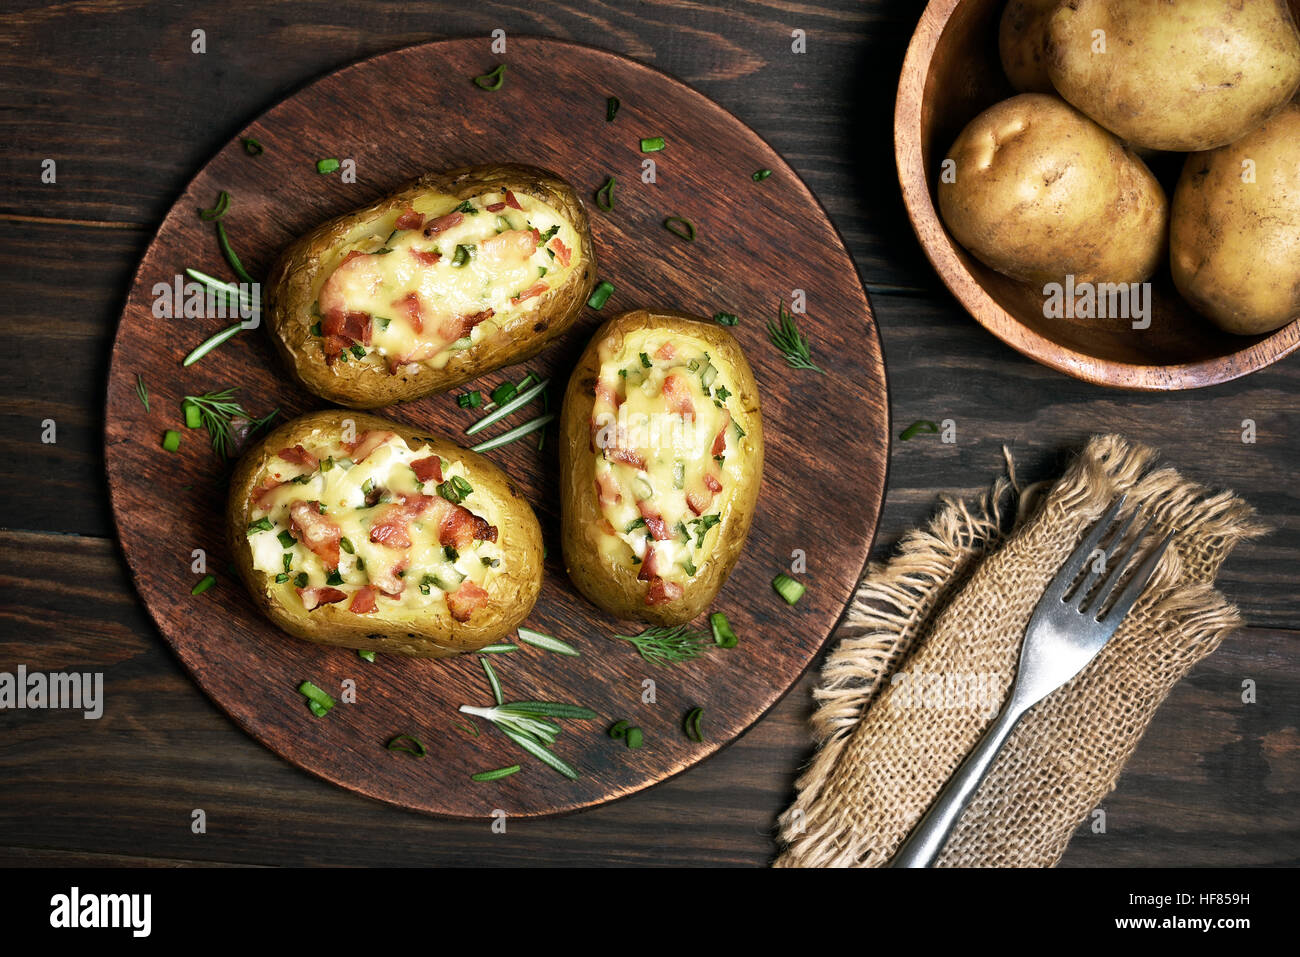 Baked stuffed potatoes with bacon, green onion and cheese, top view - Stock Image